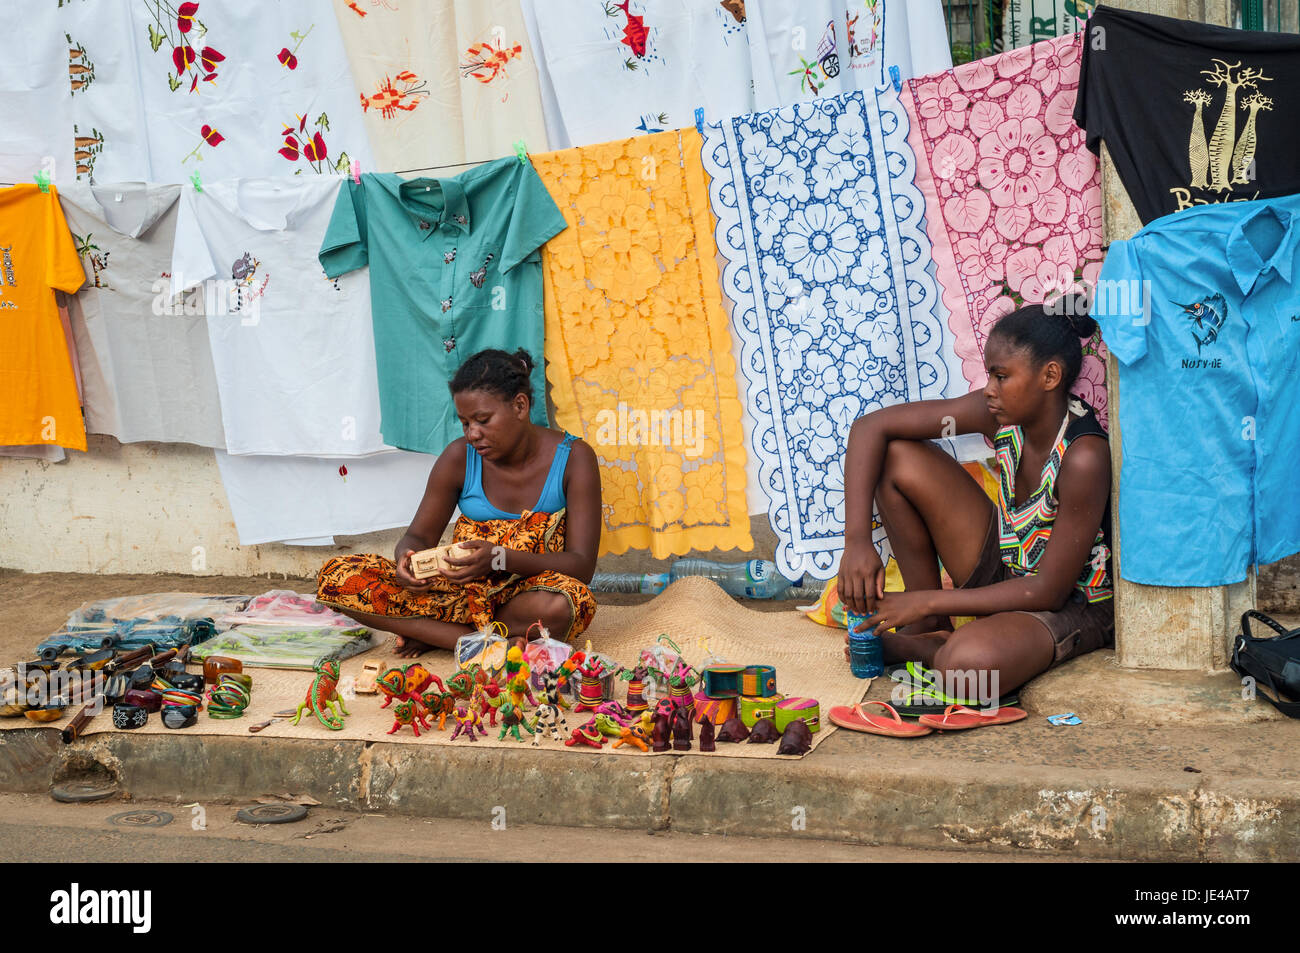 Hell-Ville, Madagascar - December 19, 2015: Indigenous women sell colorful embroidered tablecloths, fabrics and - Stock Image